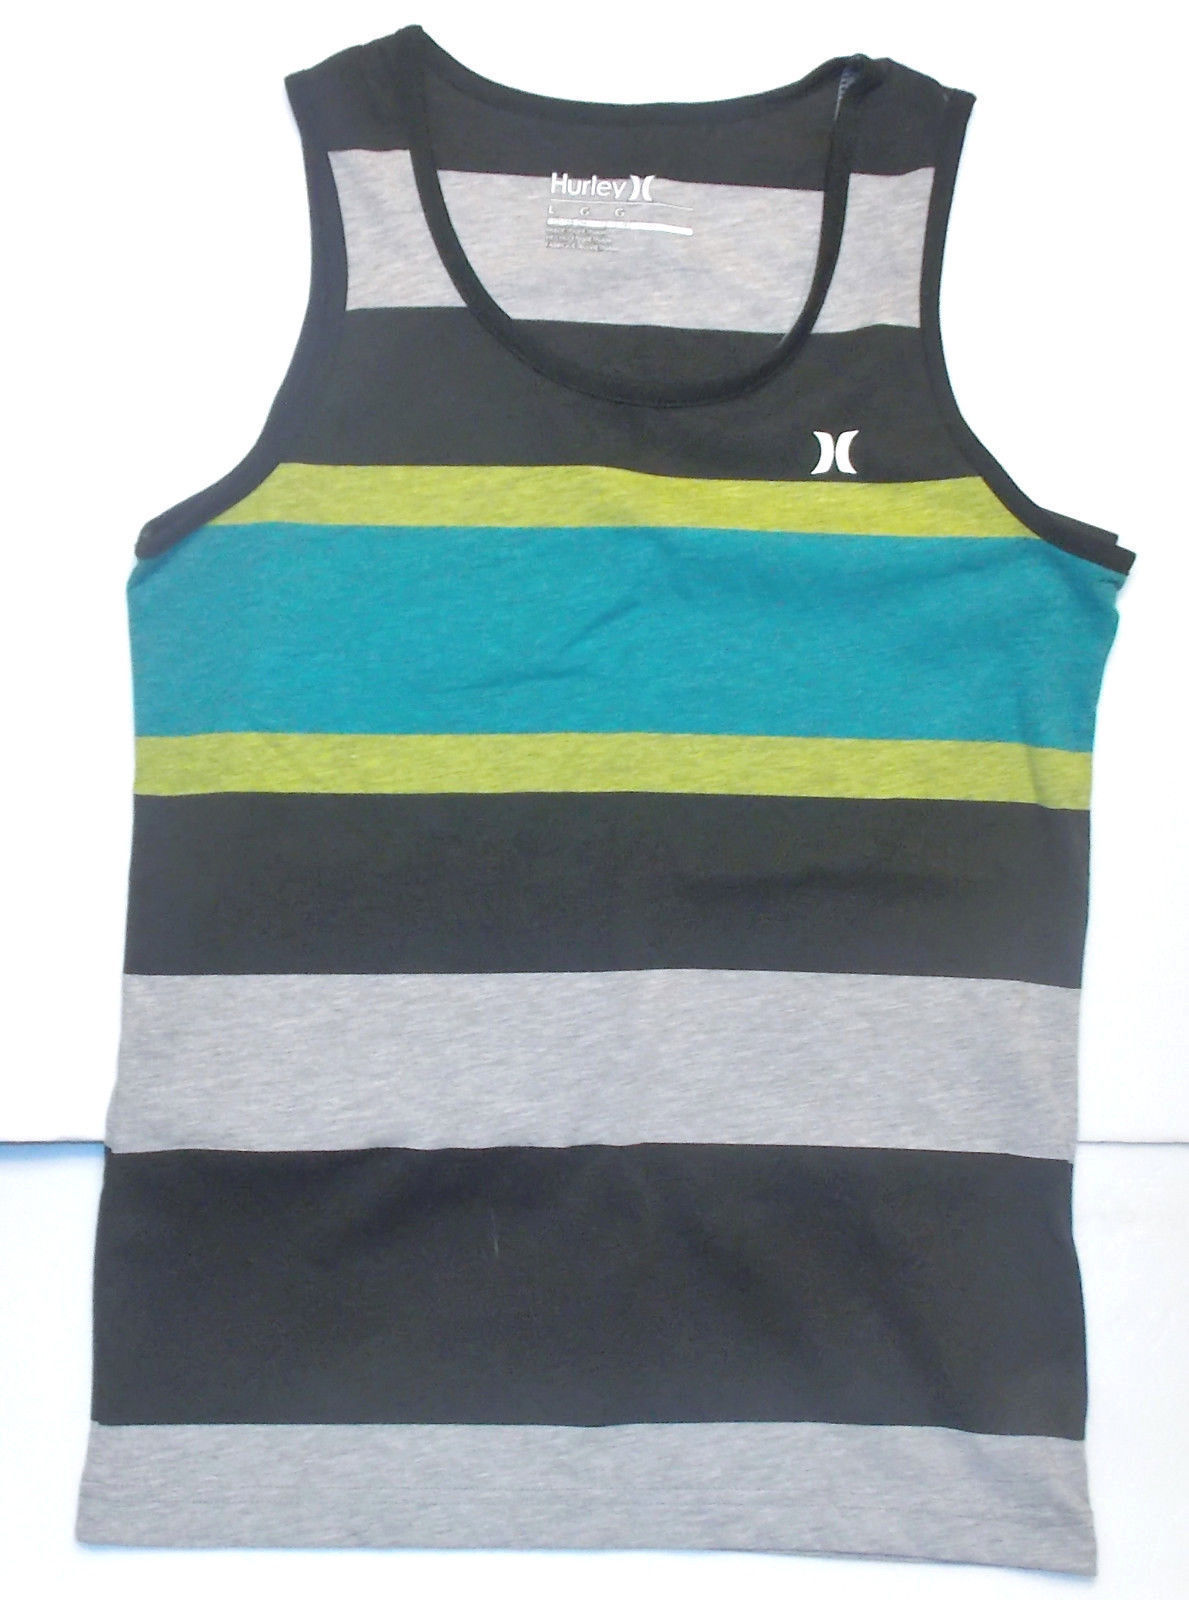 Hurley Boys Premium Tank Top T-Shirt NWT Turquoise  Size Small  or Large